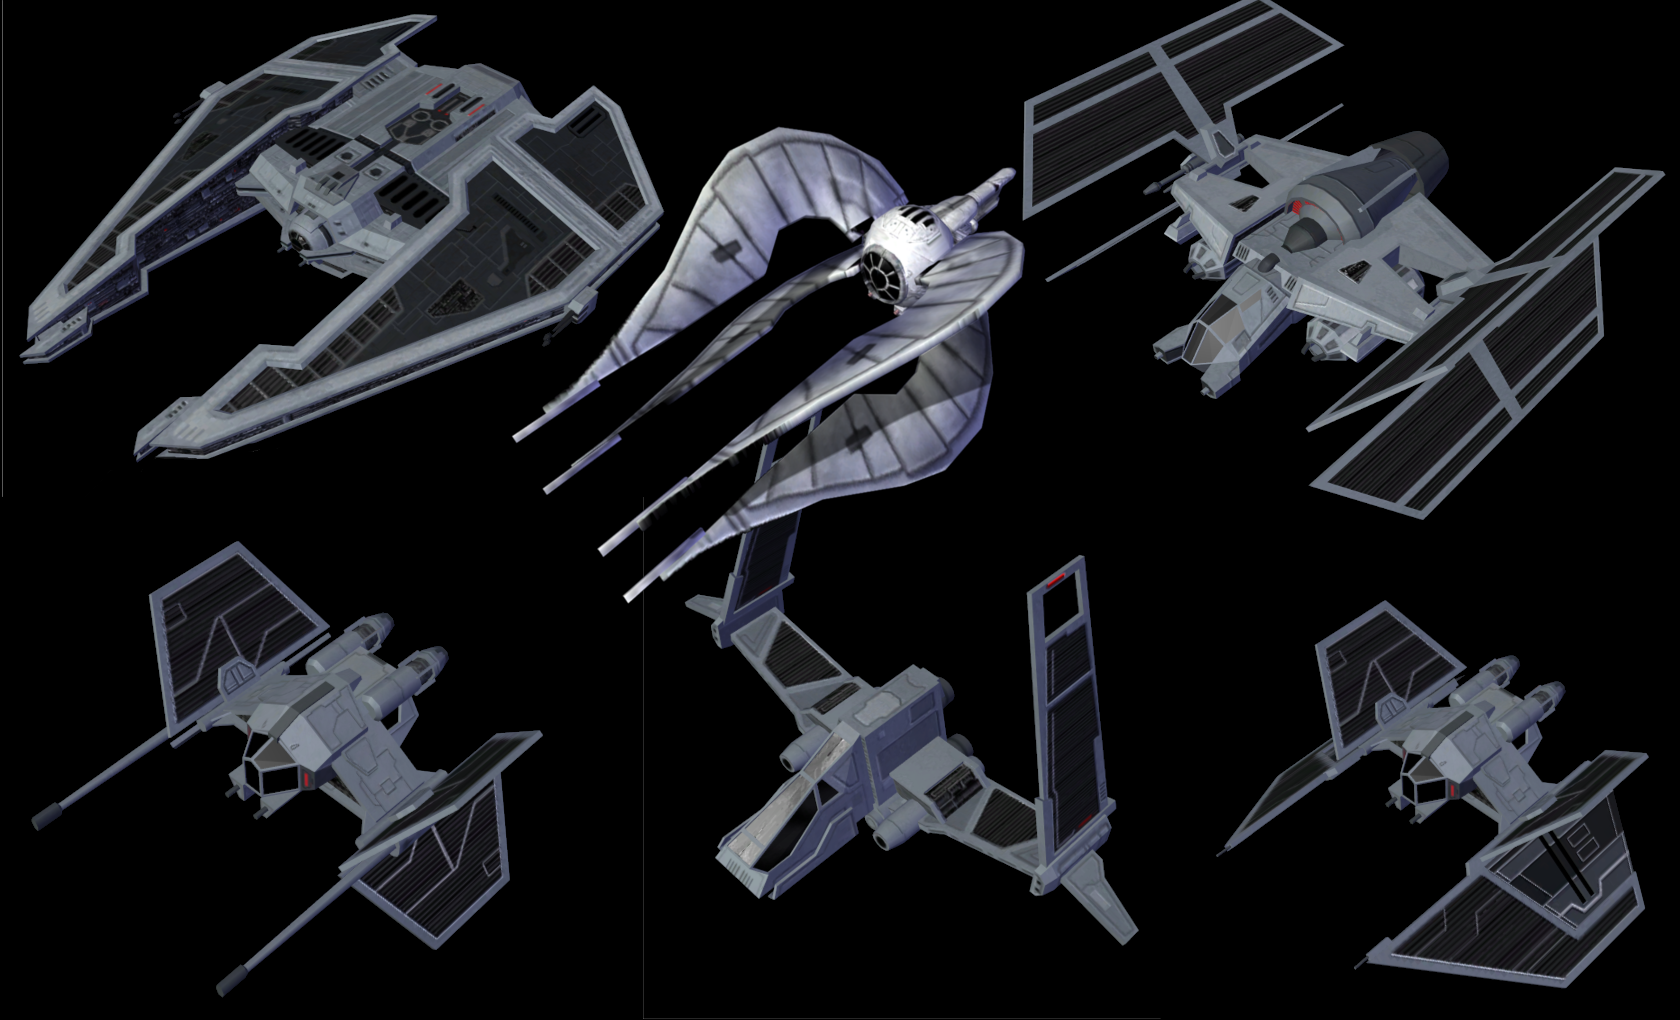 Quick image of most of the Sith fightercraft.